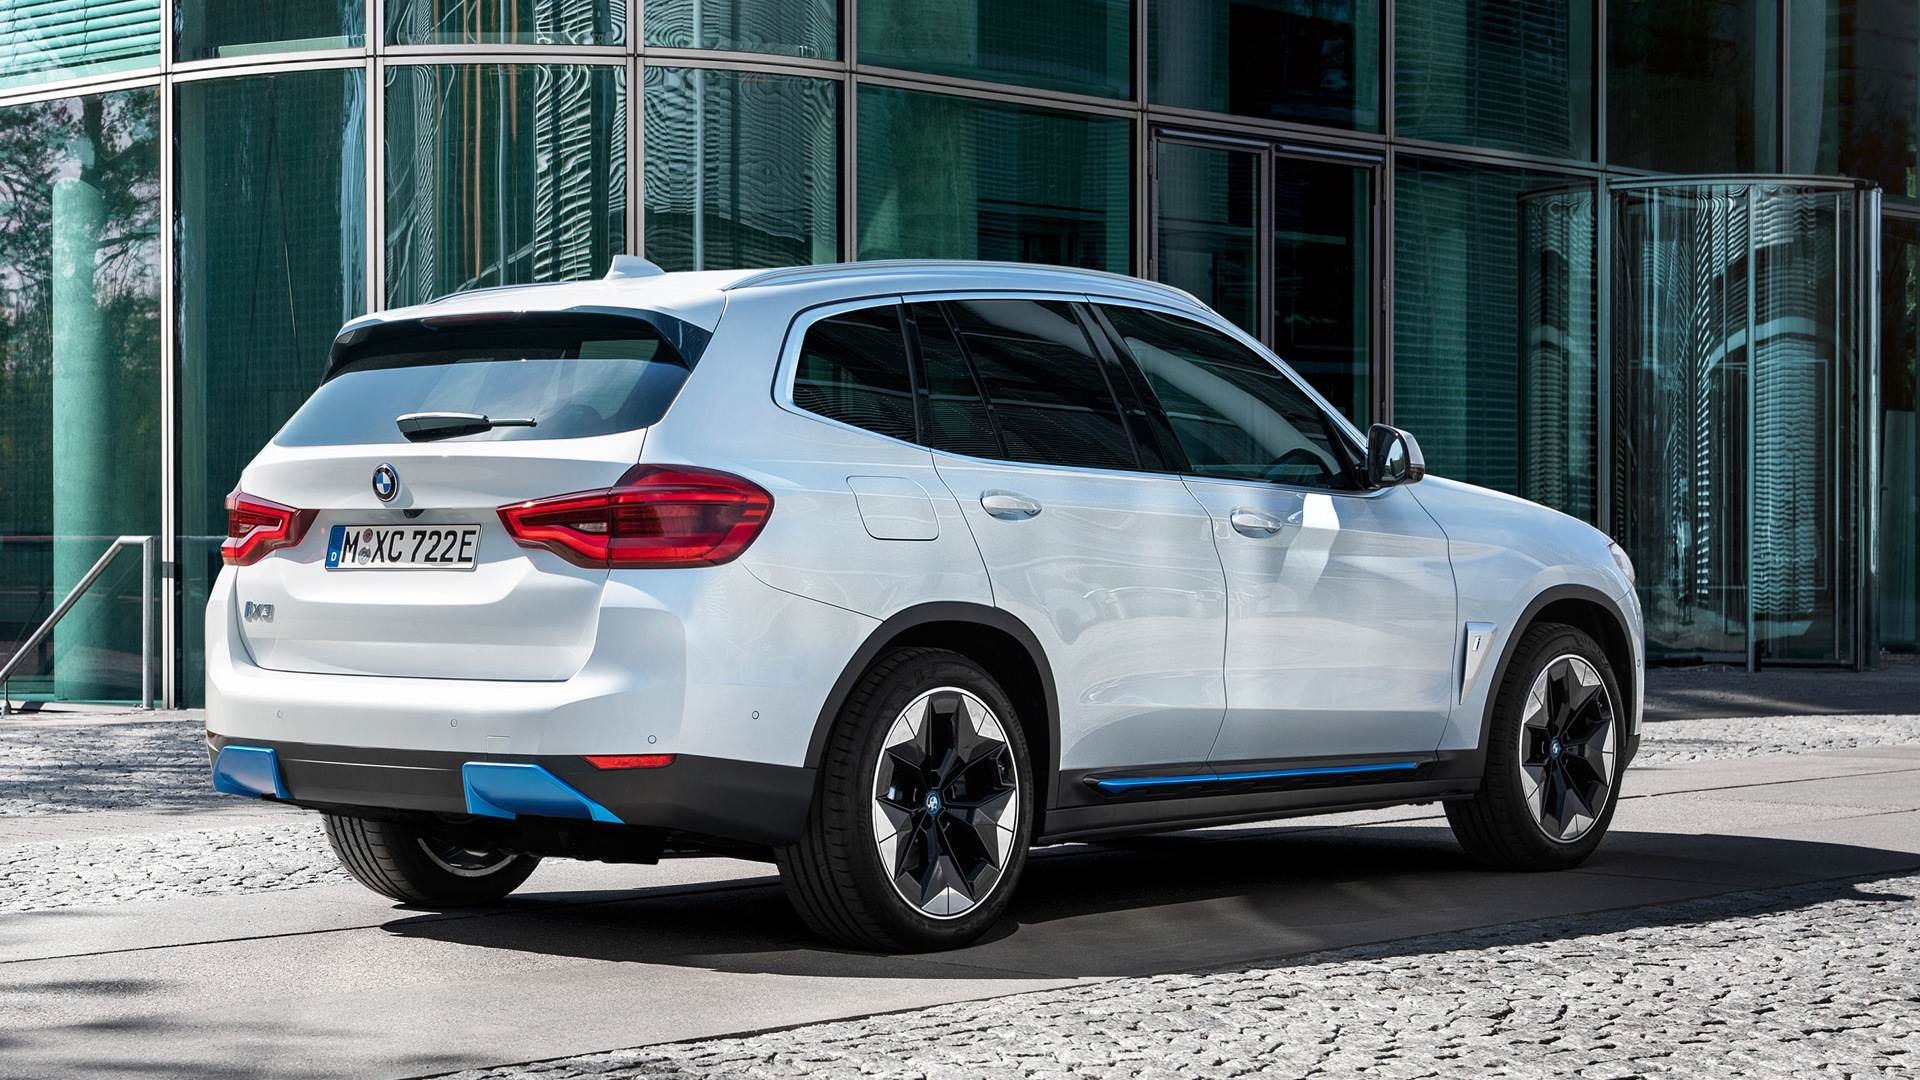 2021 bmw ix3 electric suv arrives with 80kwh battery